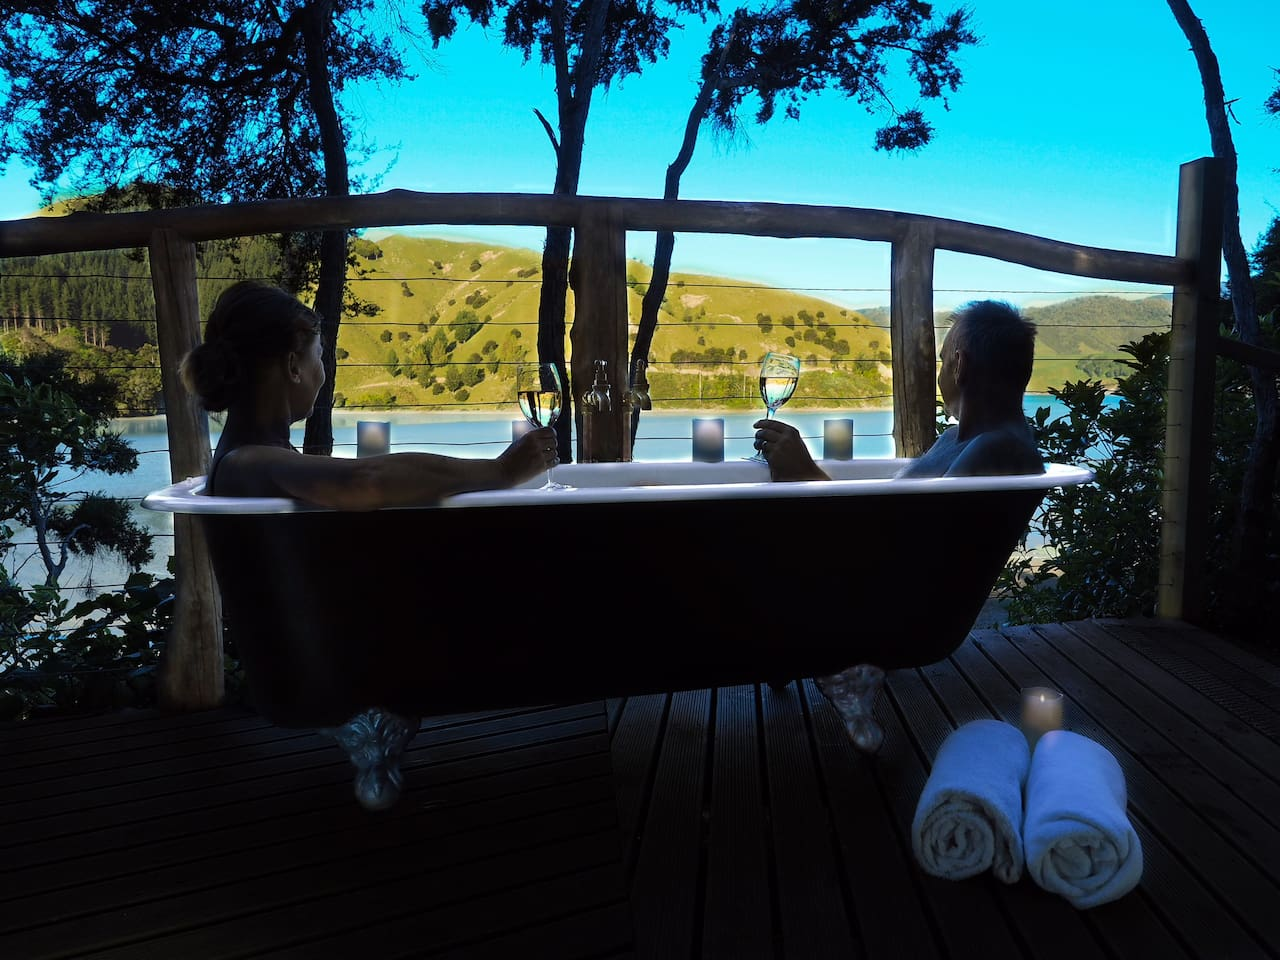 Relax, take in the spectacular scenery while indulging in our classic clawfoot bath. Positioned perfectly for gorgeous views and night skies. Watch the tide lap in and out. Definitely make a booking for this during your stay.